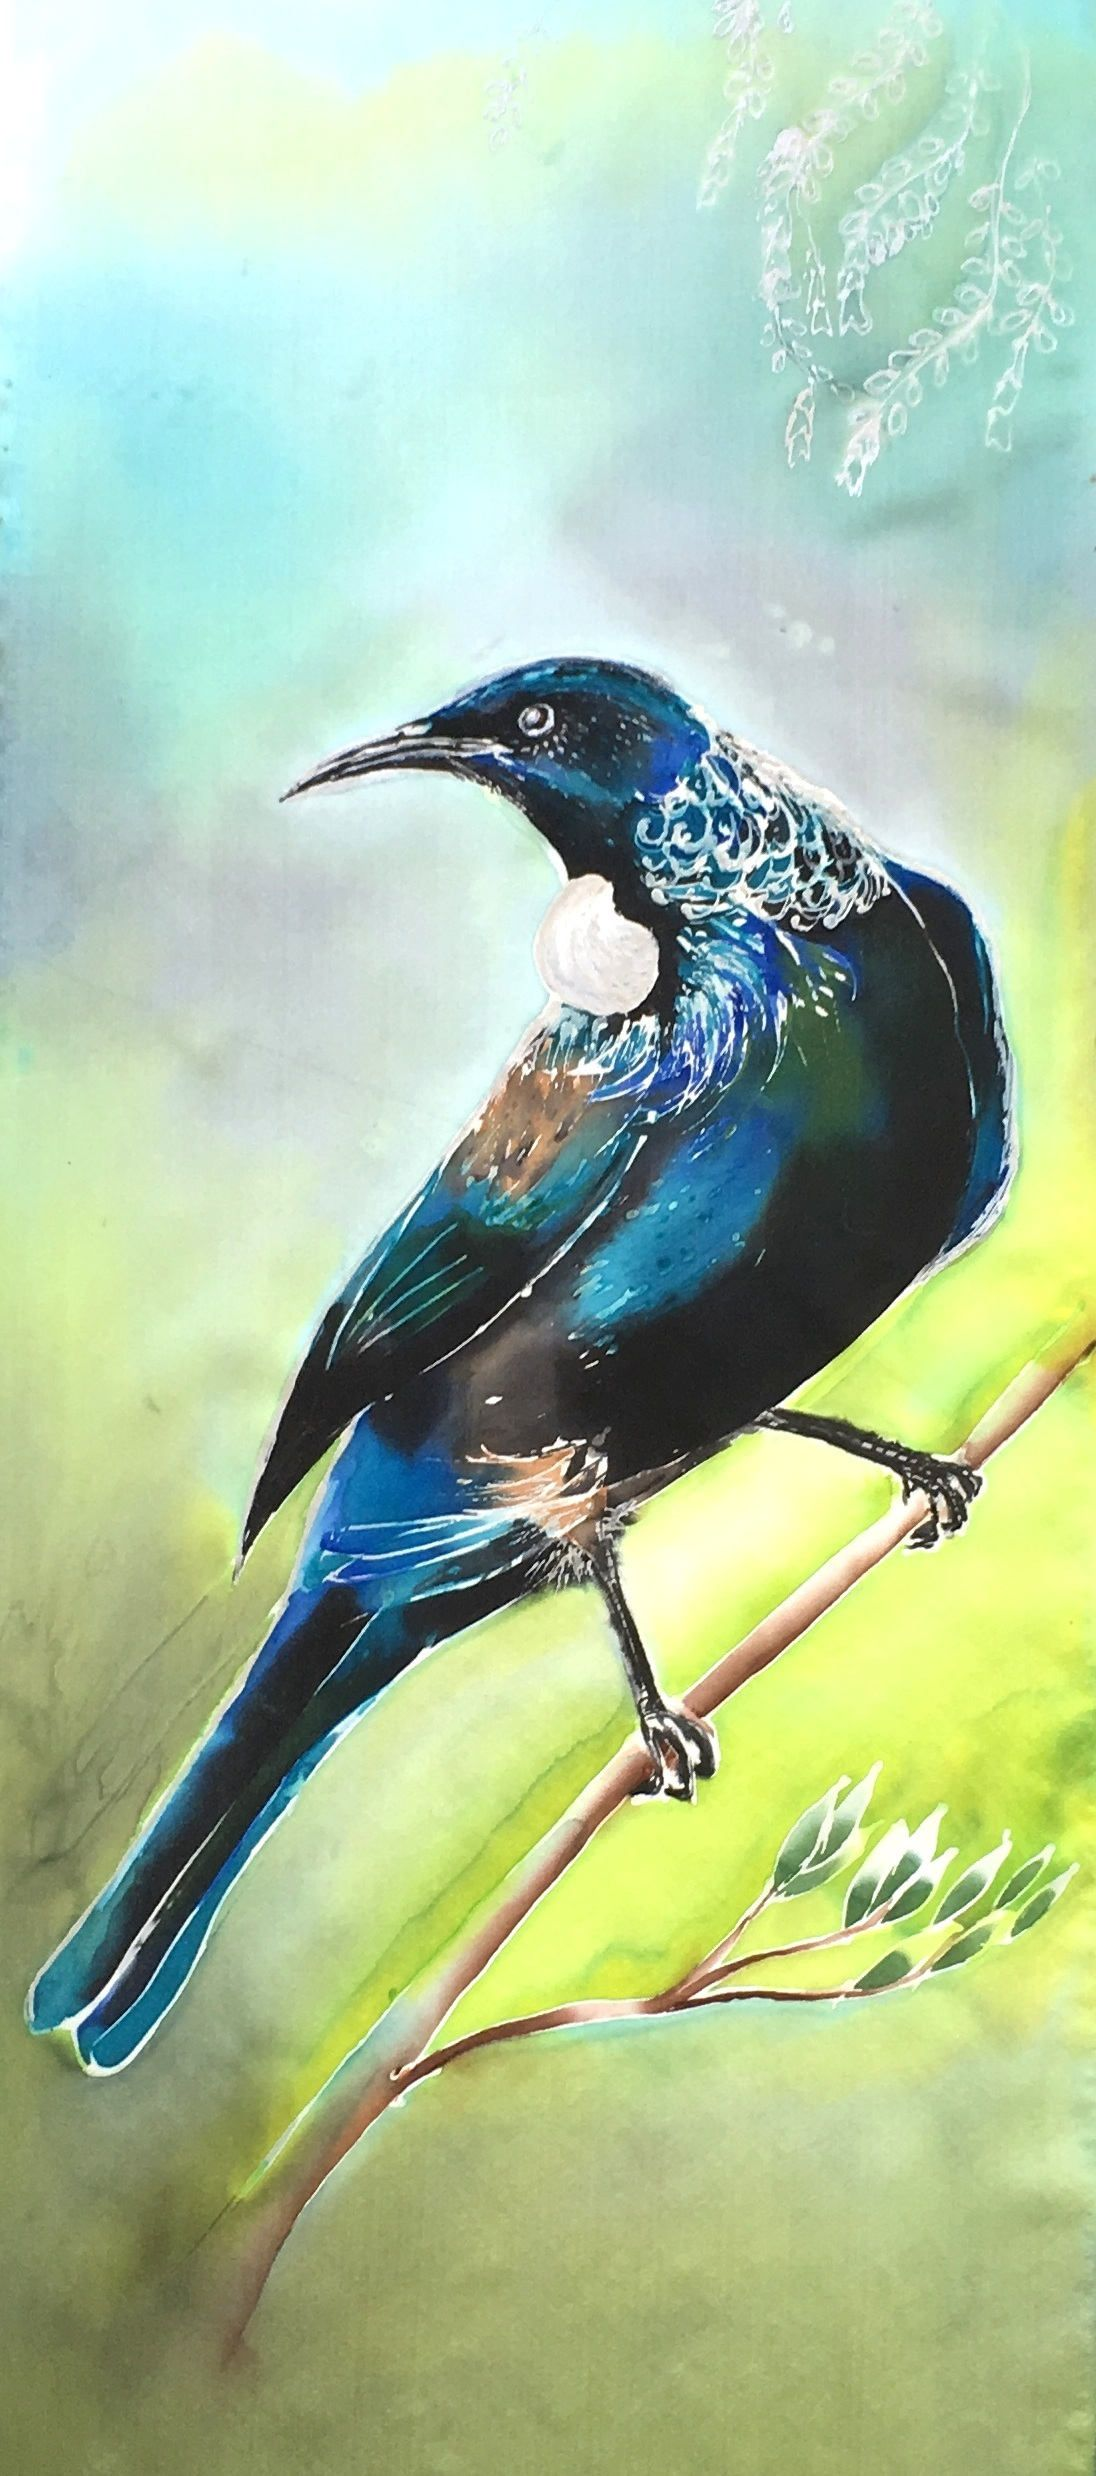 Outdoor wall art garden art new zealand tui bird print on